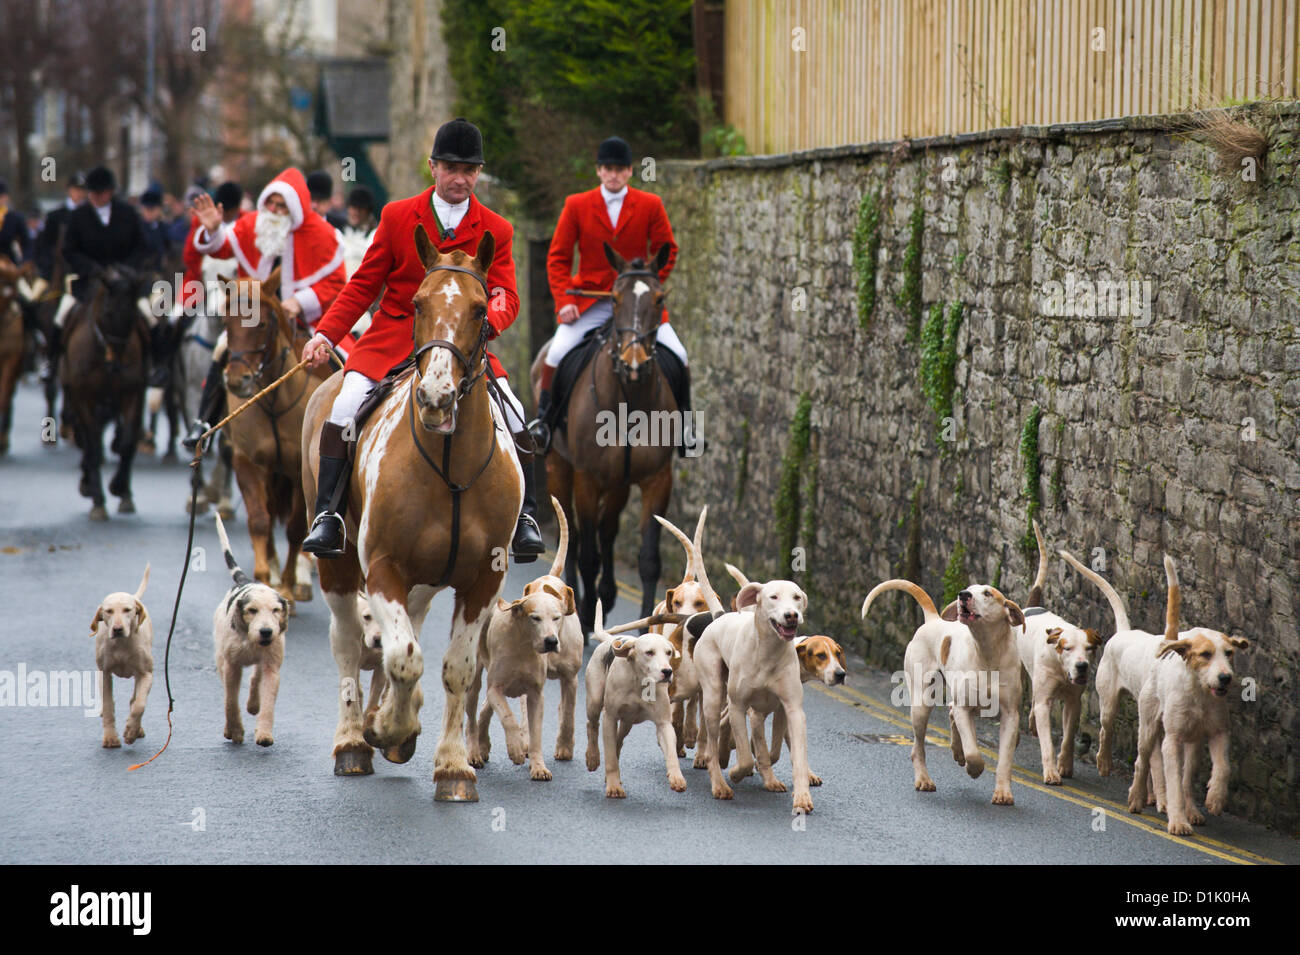 Hay-on-Wye, Wales, UK. 26th Dec 2012. The Golden Valley Hunt gather in Hay on Wye for their annual Boxing Day hunt. - Stock Image